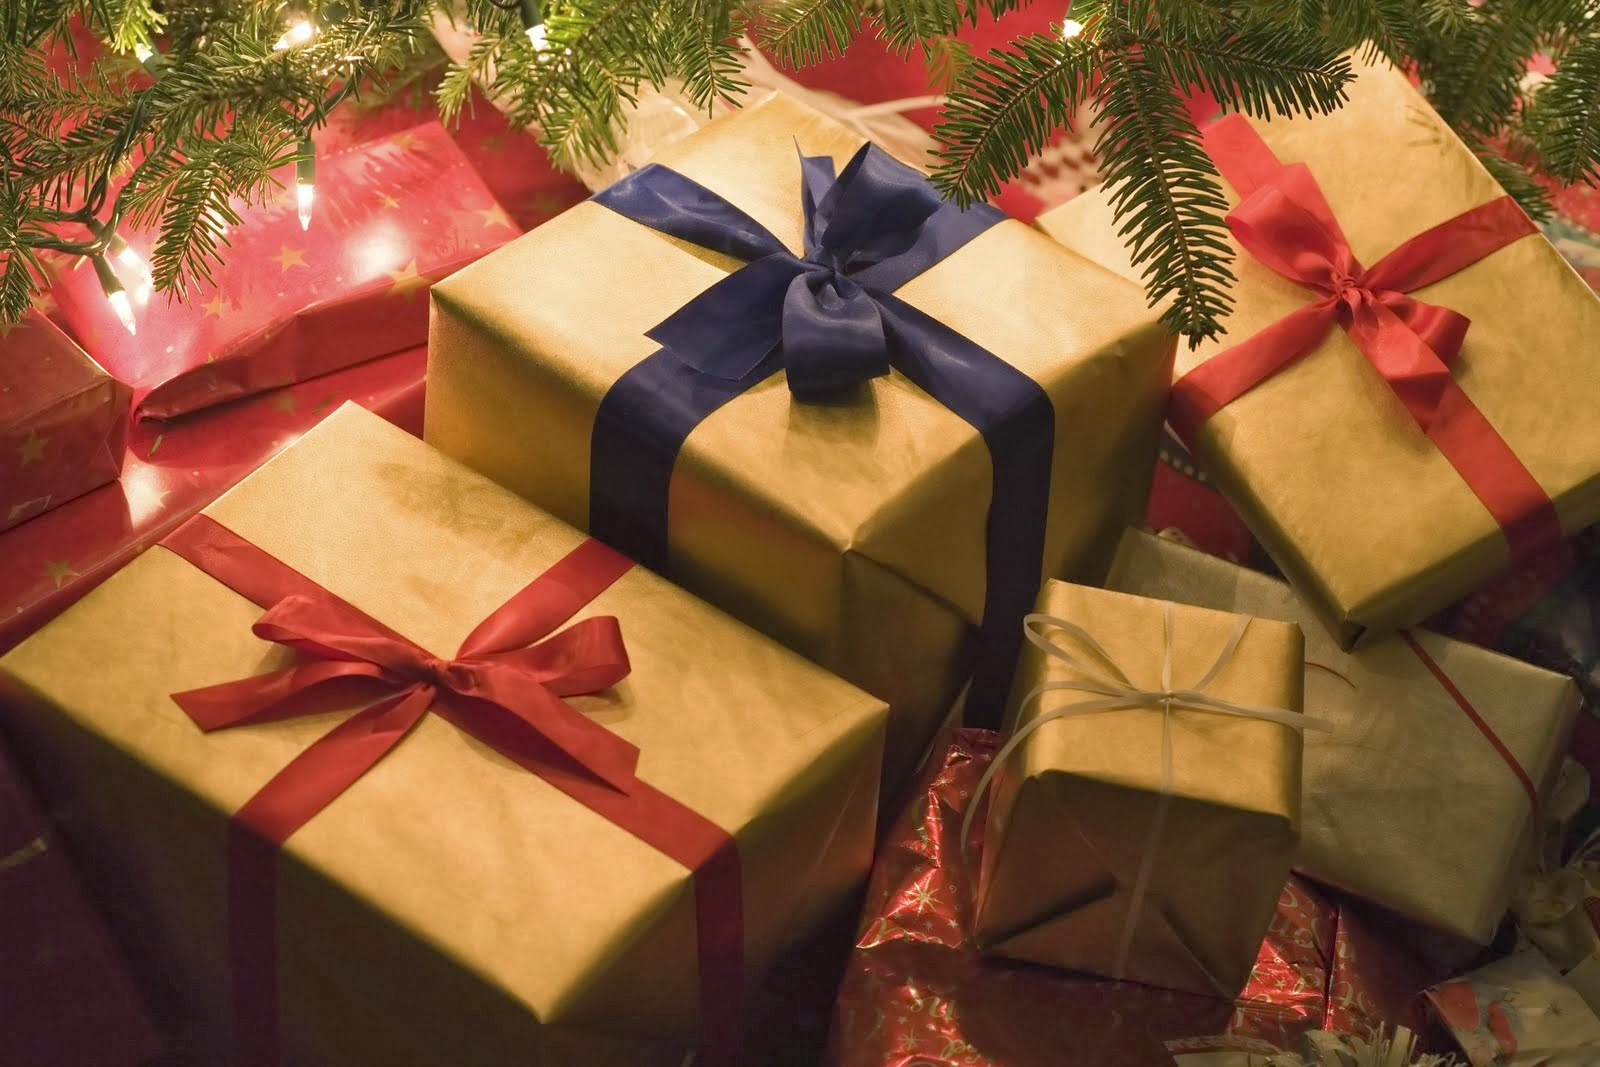 Christmas Presents In A Pile